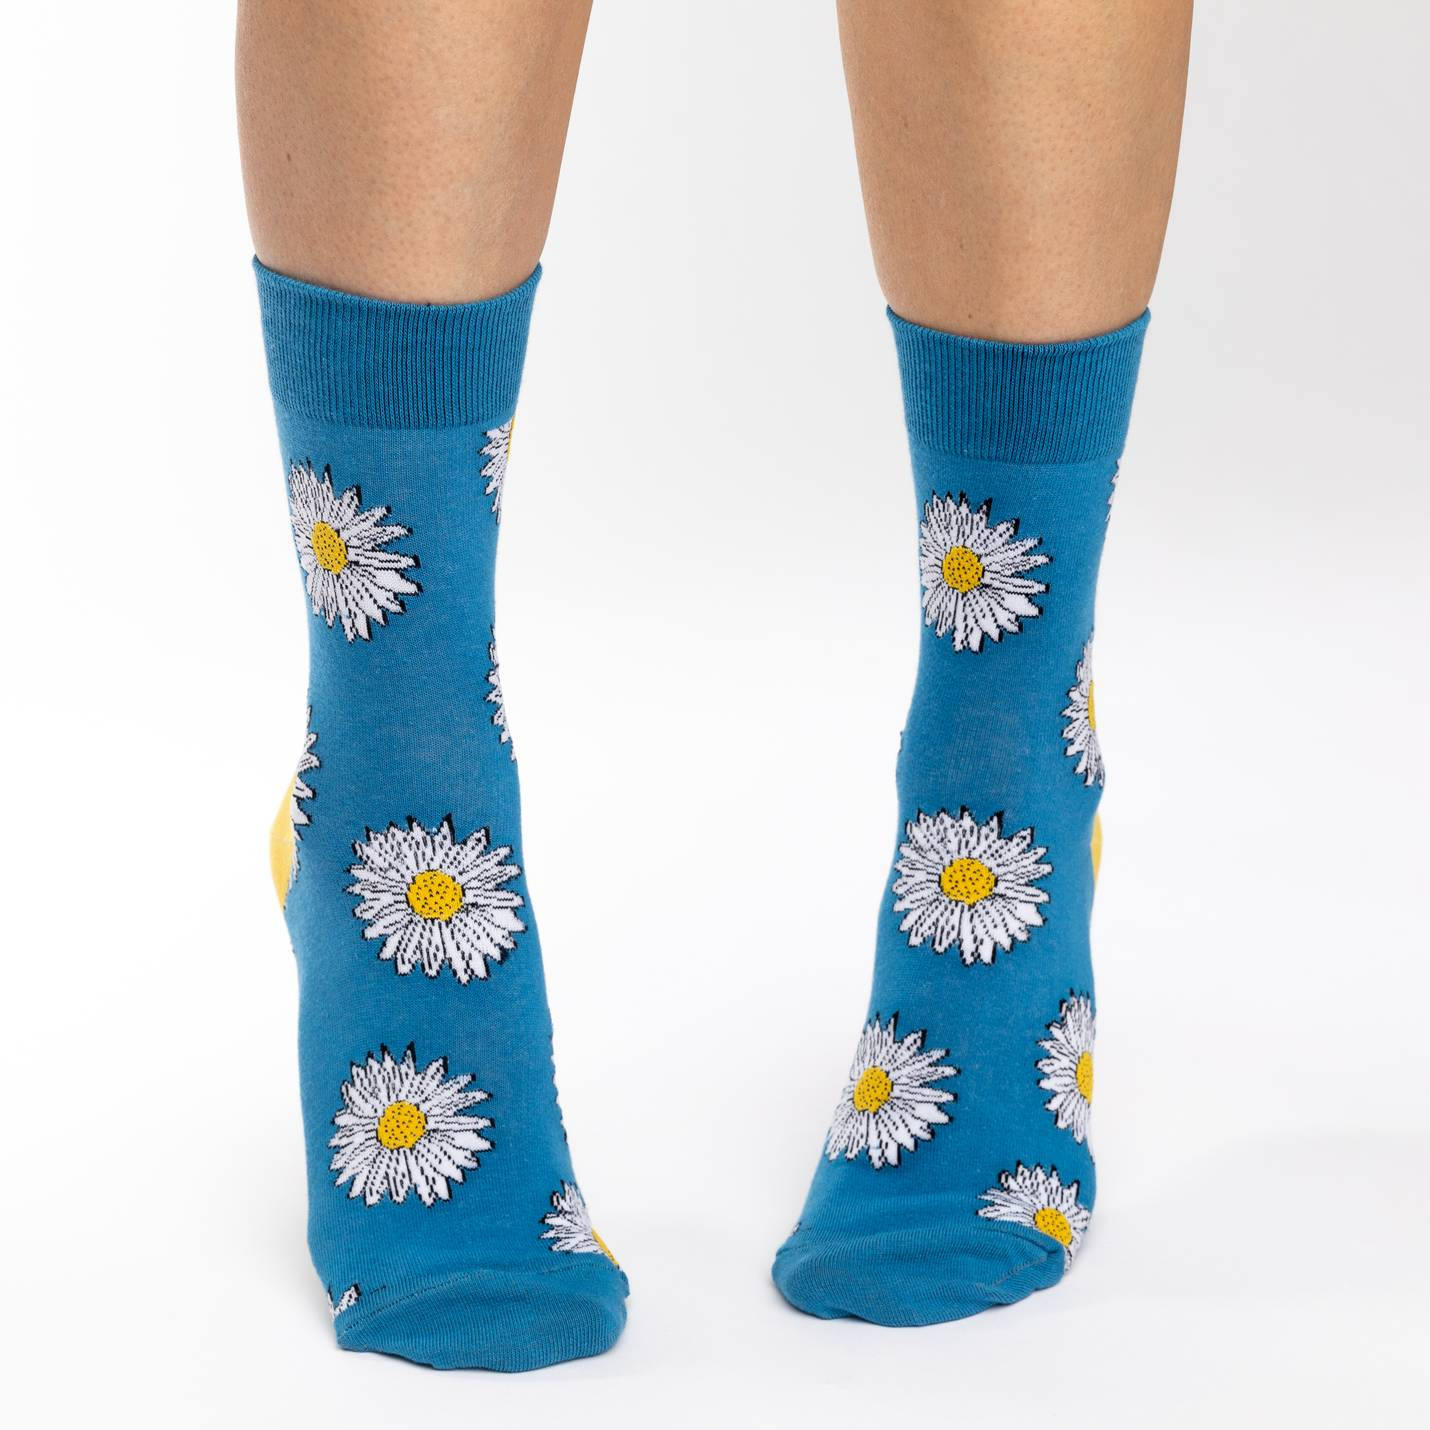 Good Luck Sock Women's - Daisy Flowers